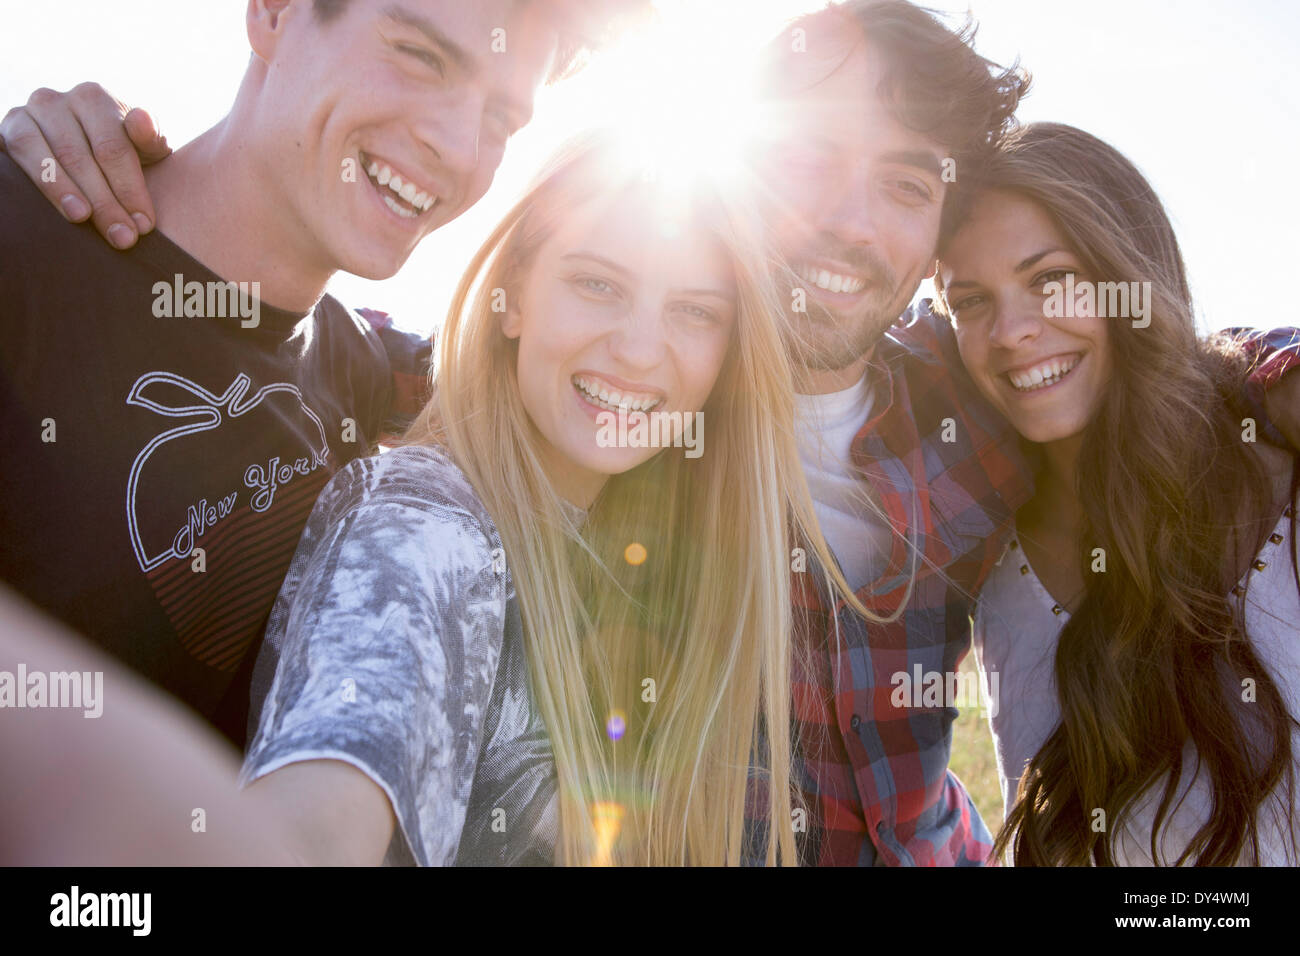 Four friends smiling toward camera - Stock Image